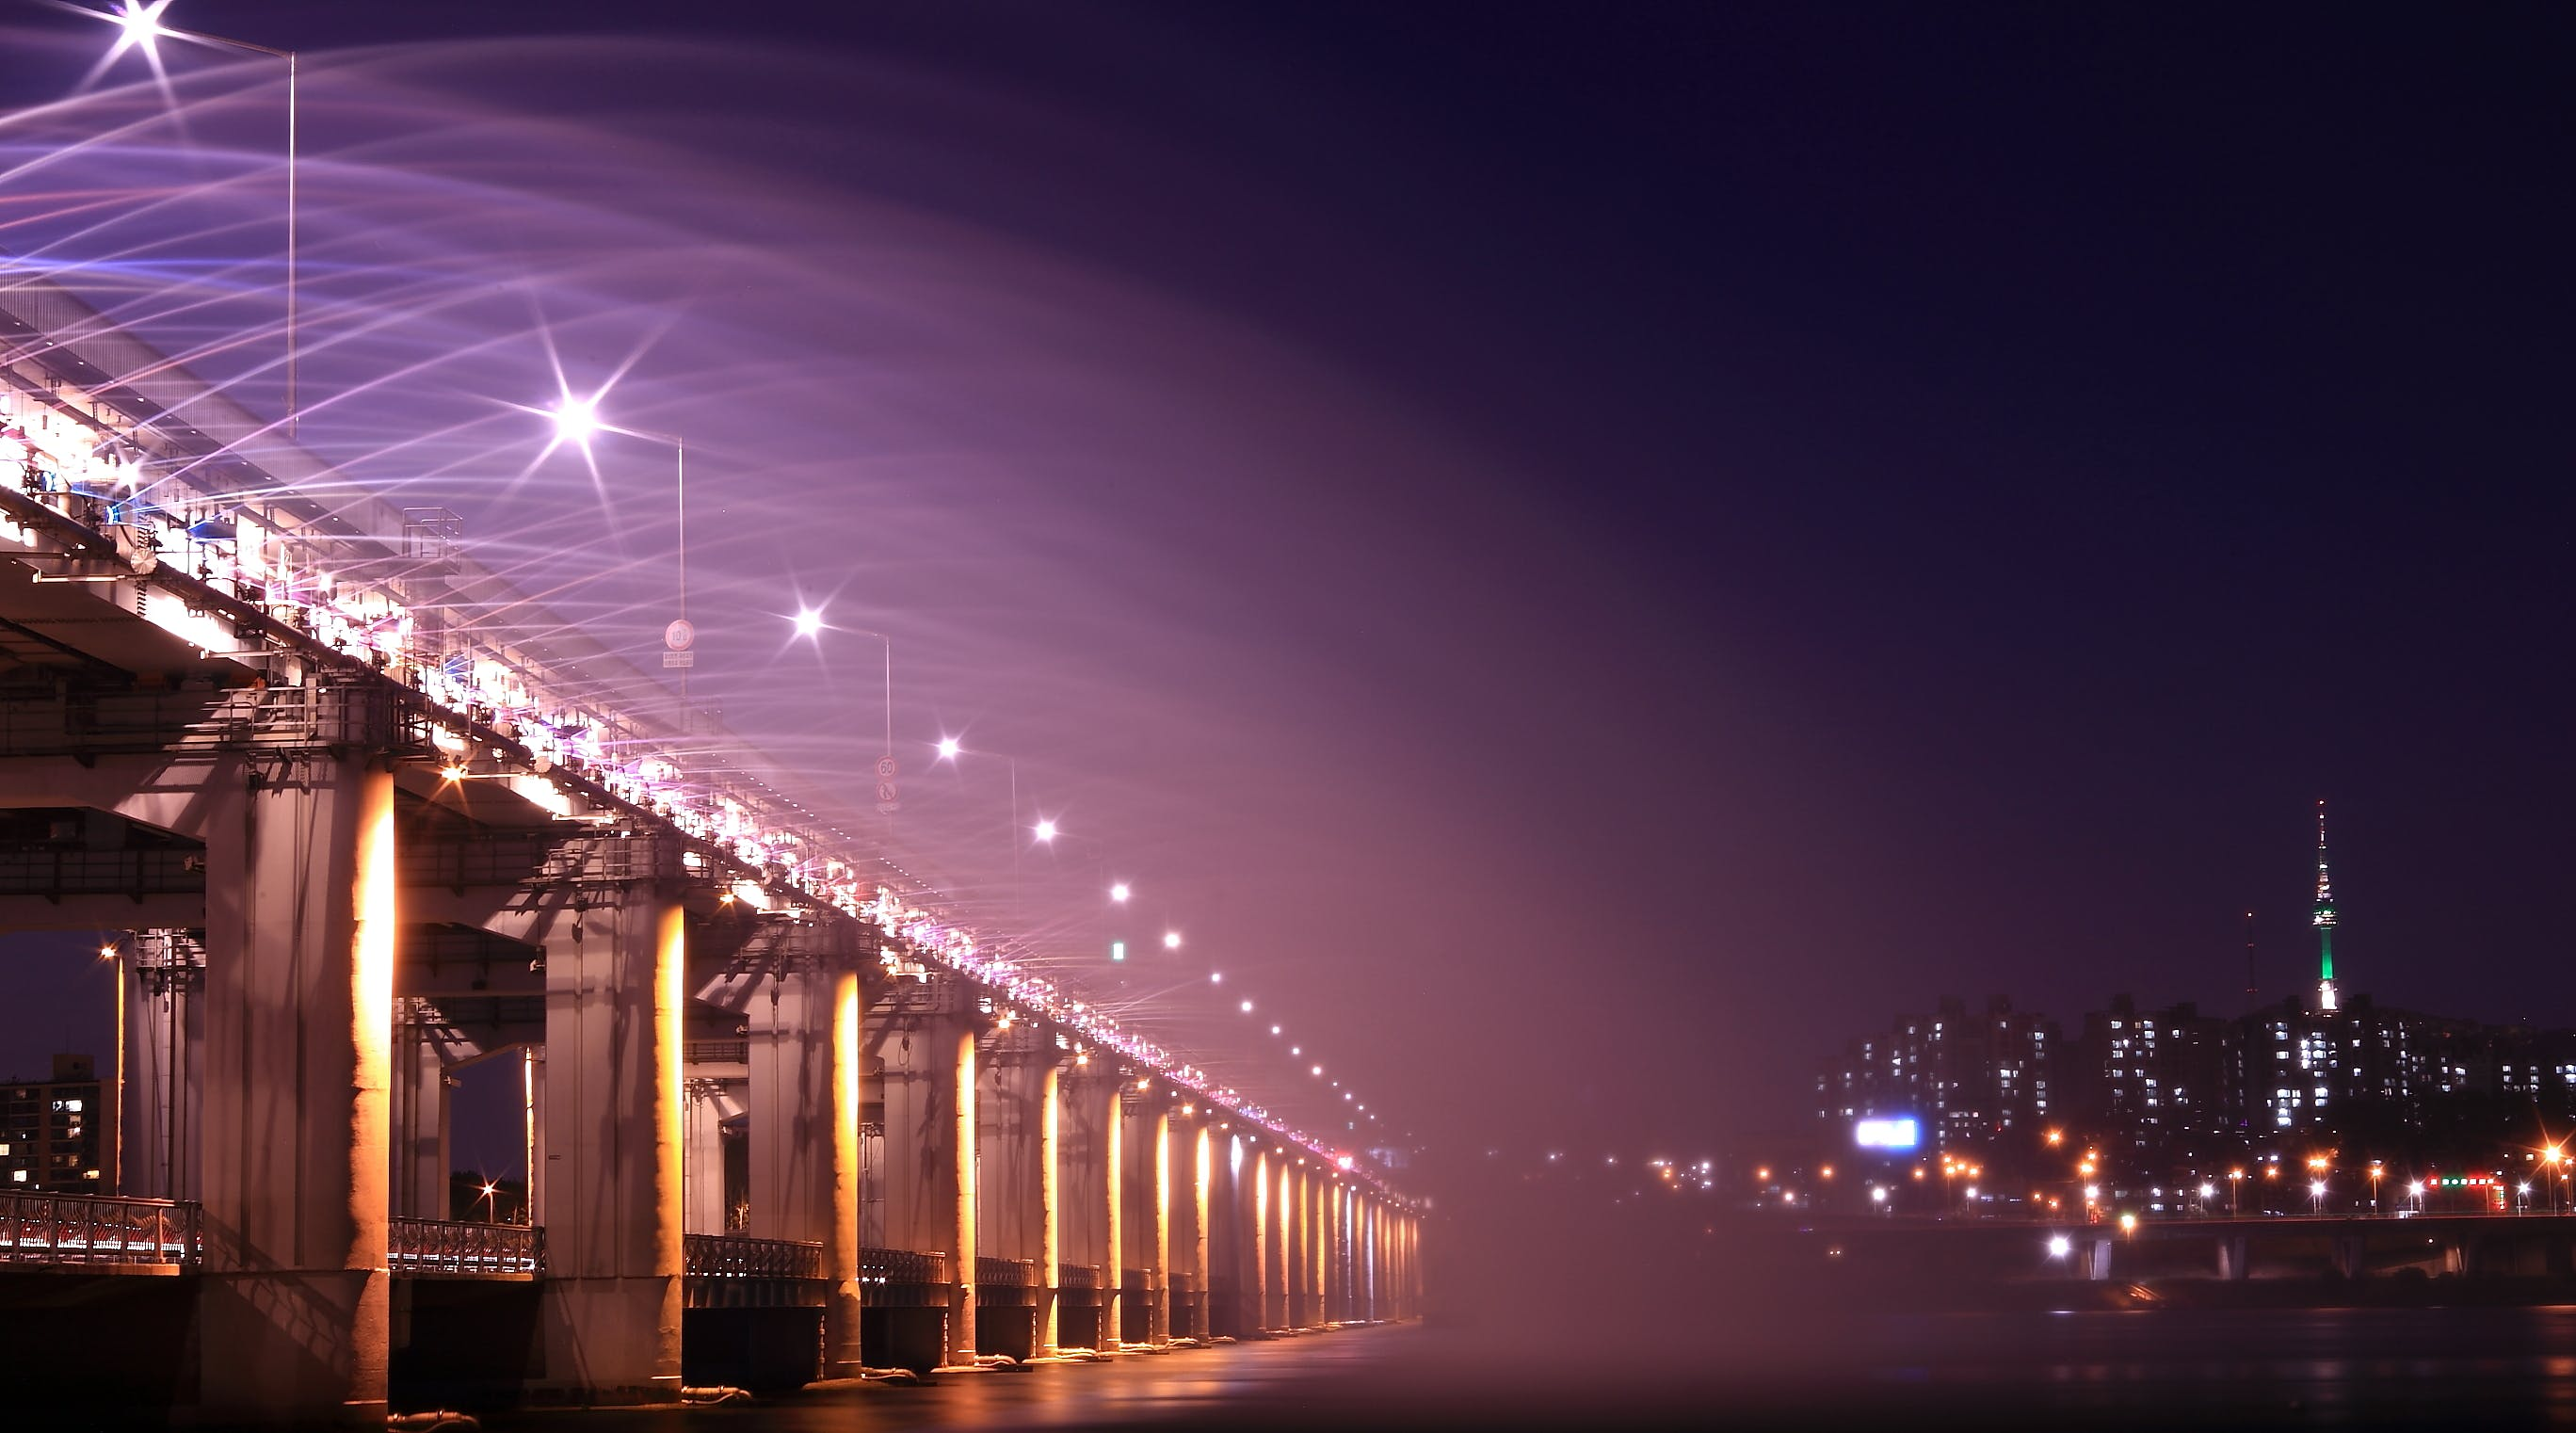 Gray Bridge With Street Light during Nighttime